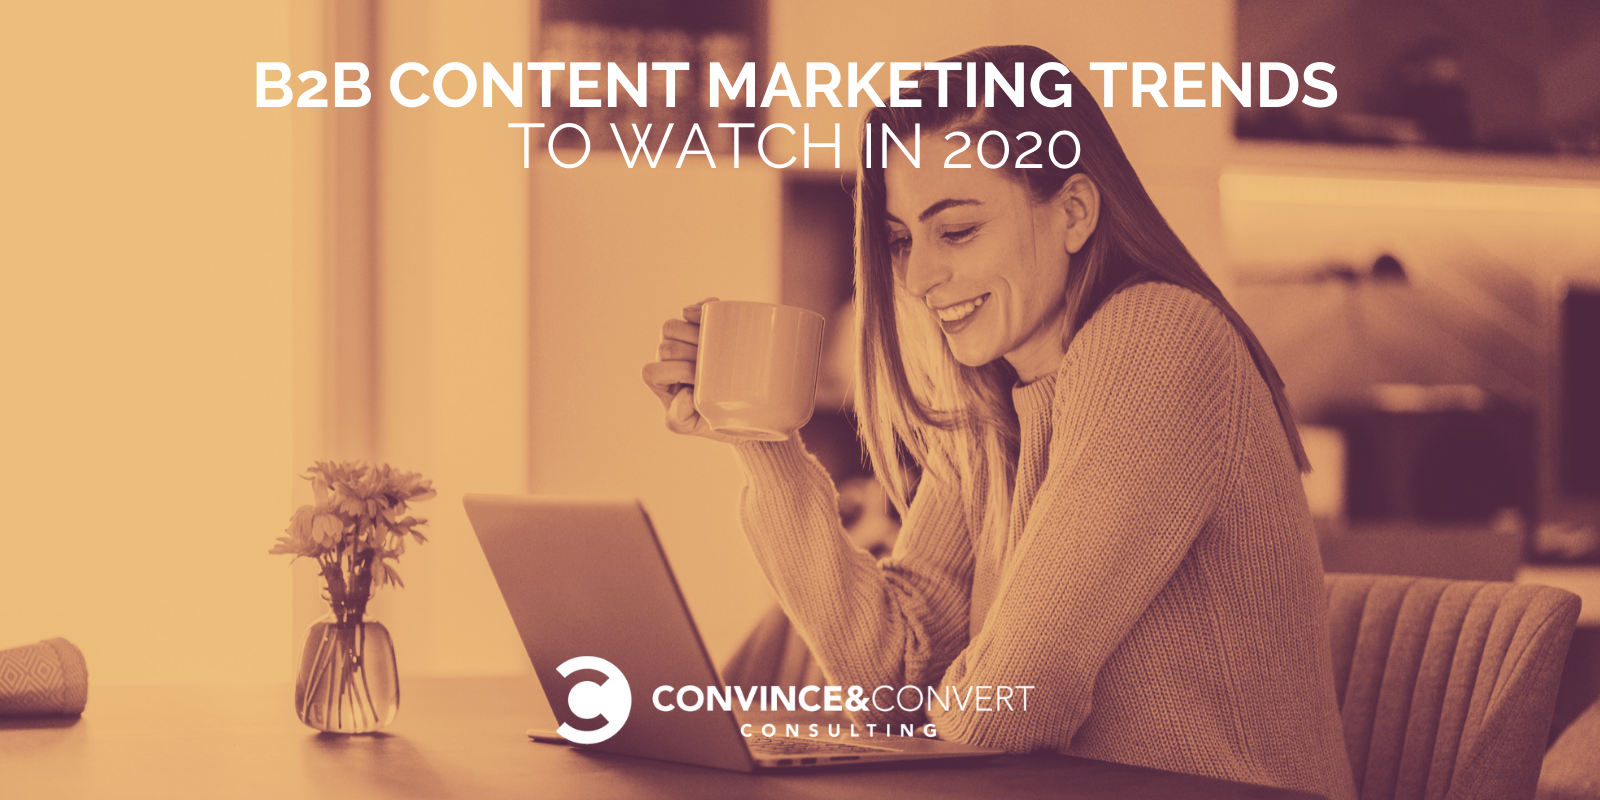 The Top B2B Content Marketing Trends to Watch in 2020